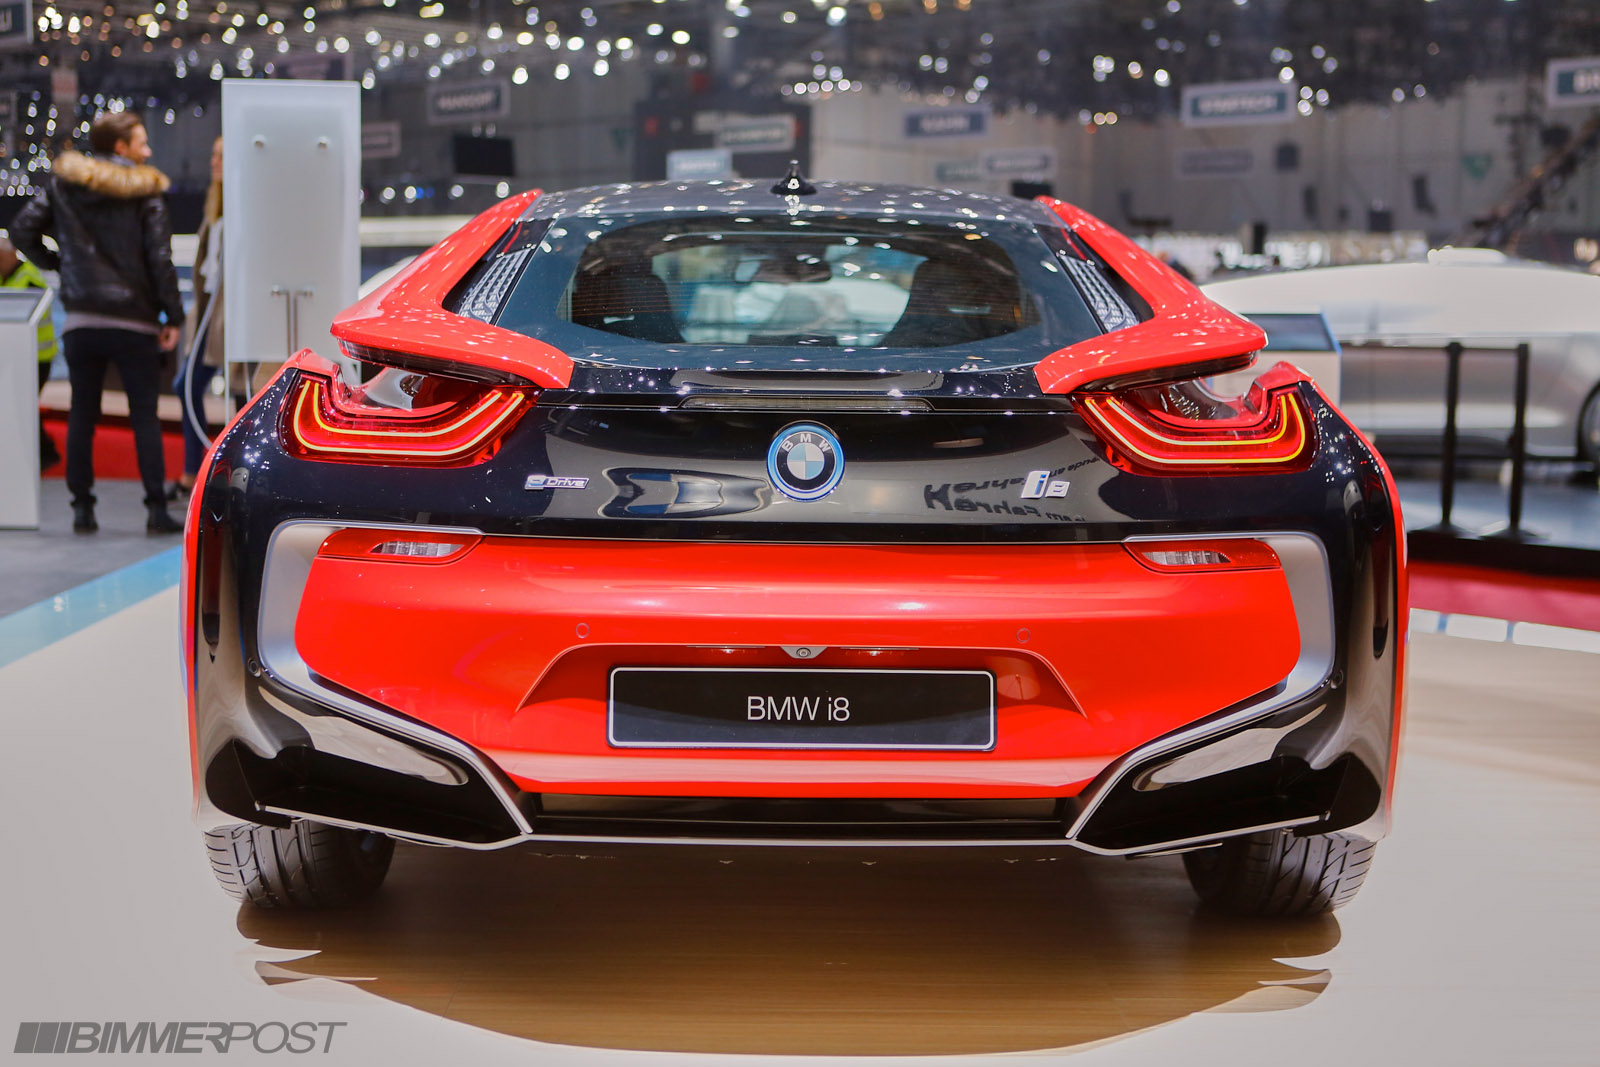 New Limited Edition Bmw I8 Protonic Red Edition W Geneva